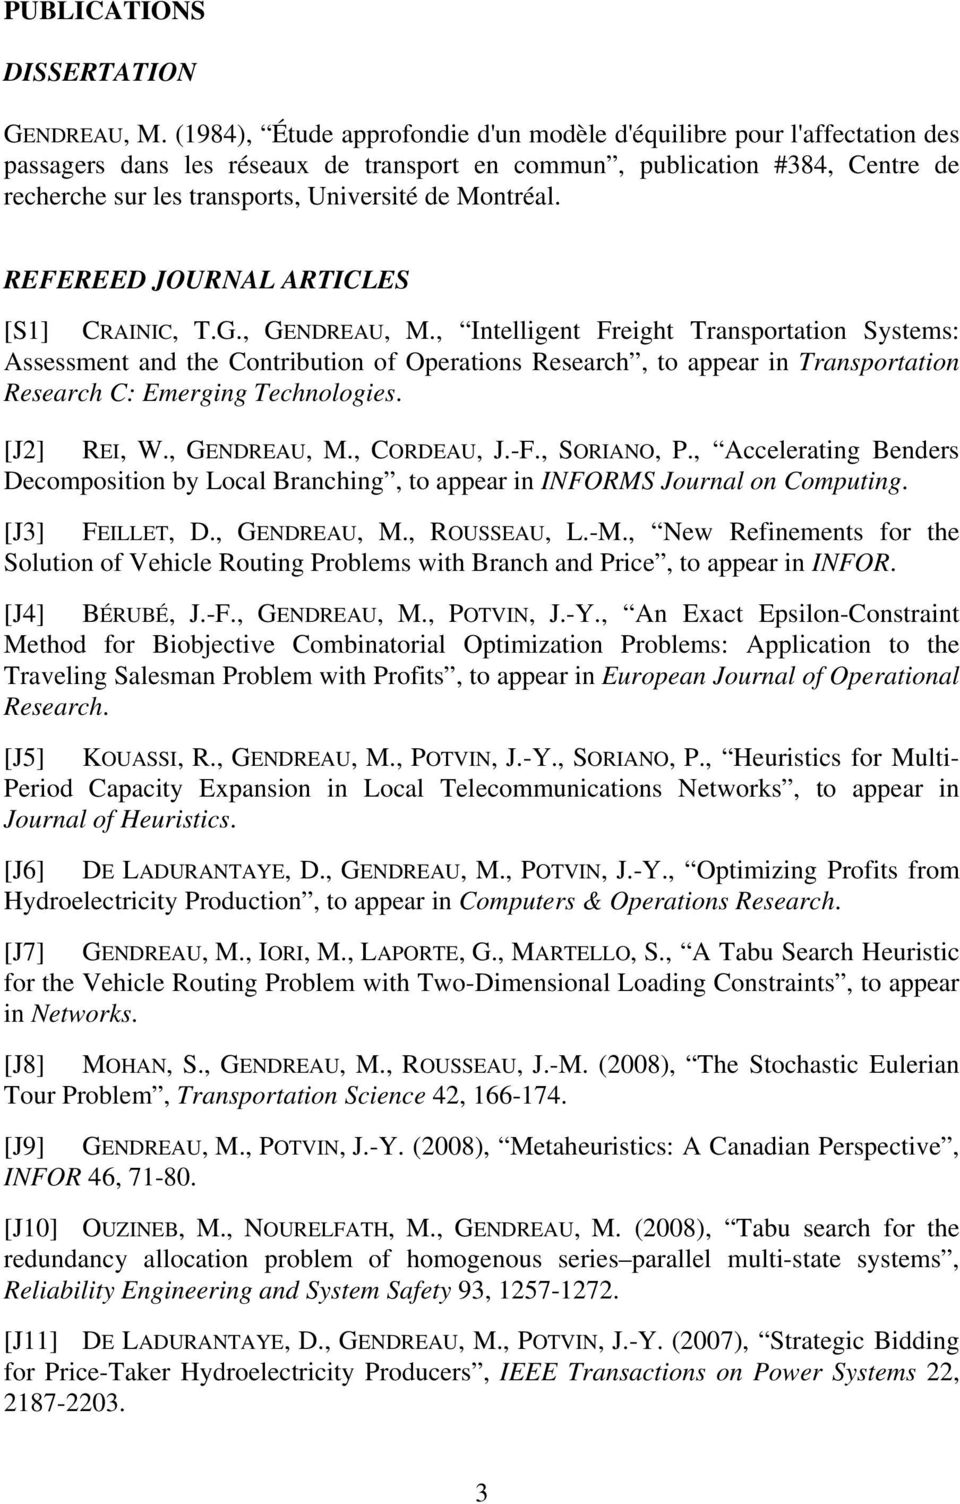 Montréal. REFEREED JOURNAL ARTICLES [S1] CRAINIC, T.G., GENDREAU, M.